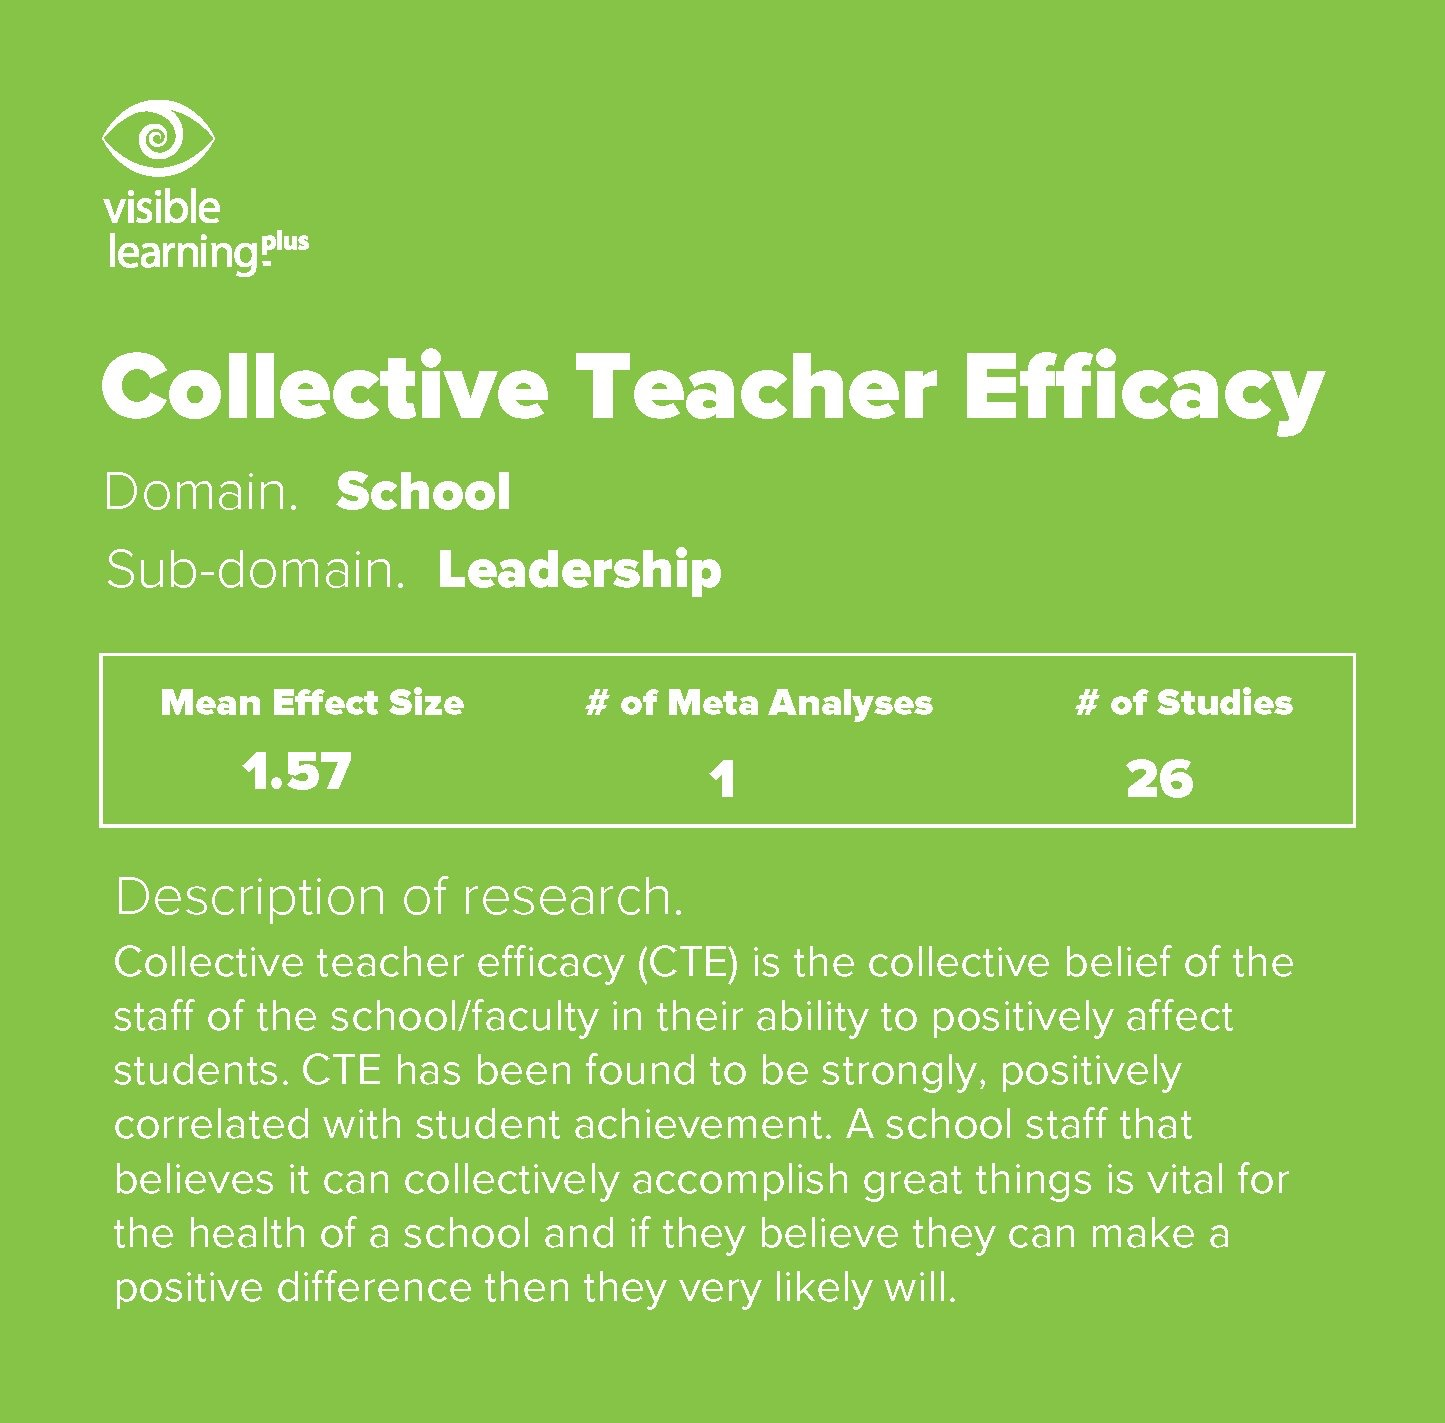 Collective Teacher Efficacy (CTE) according to John Hattie